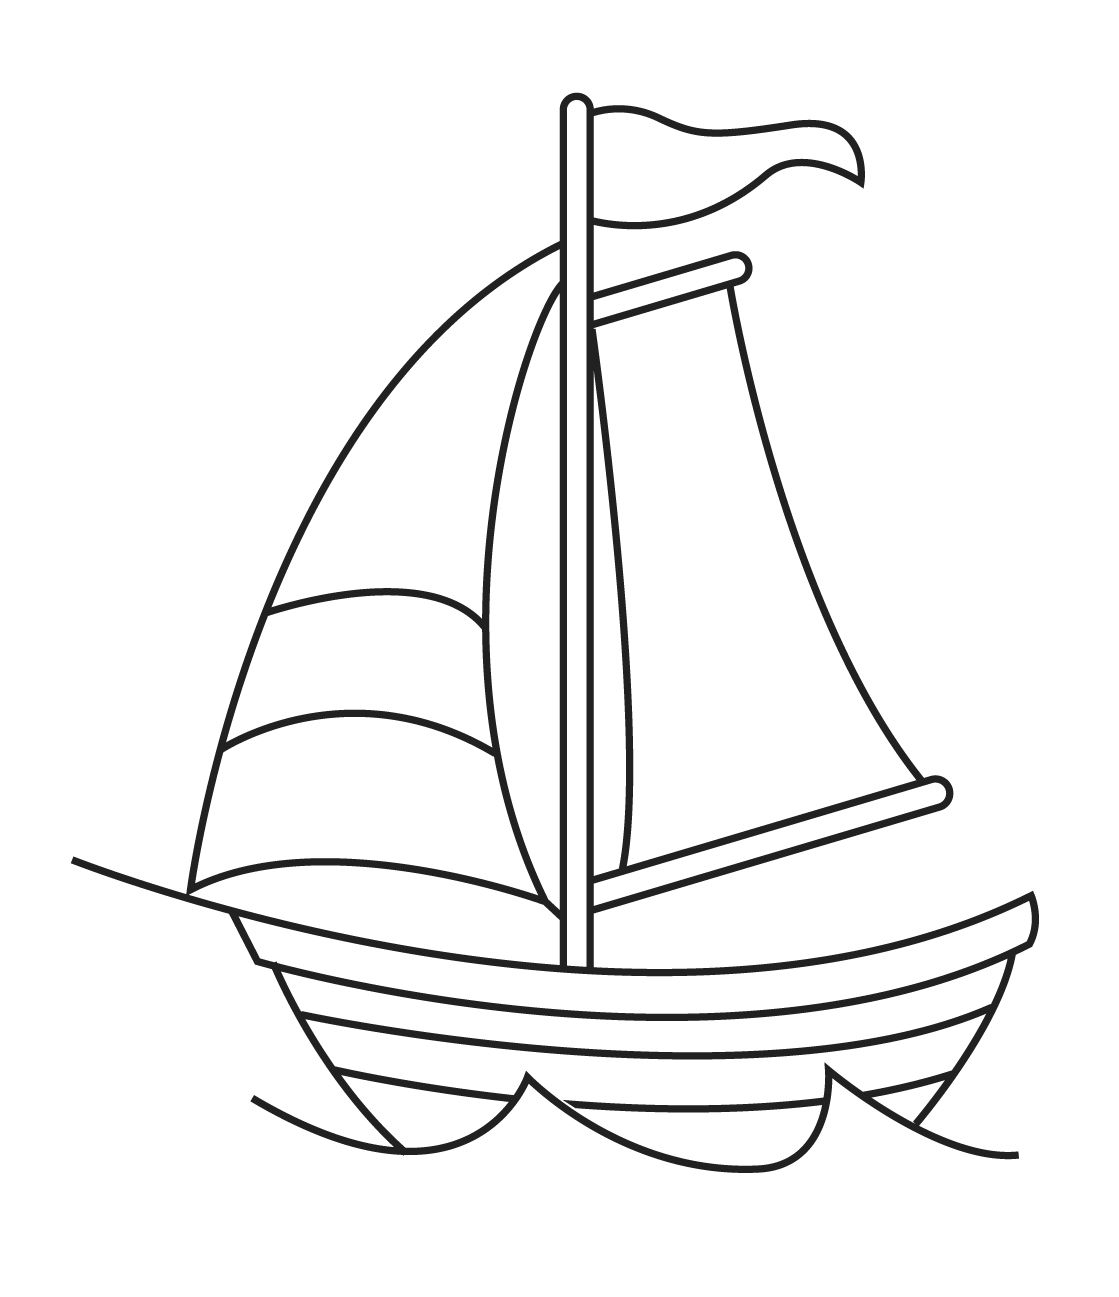 Image result for boat drawing free clip art